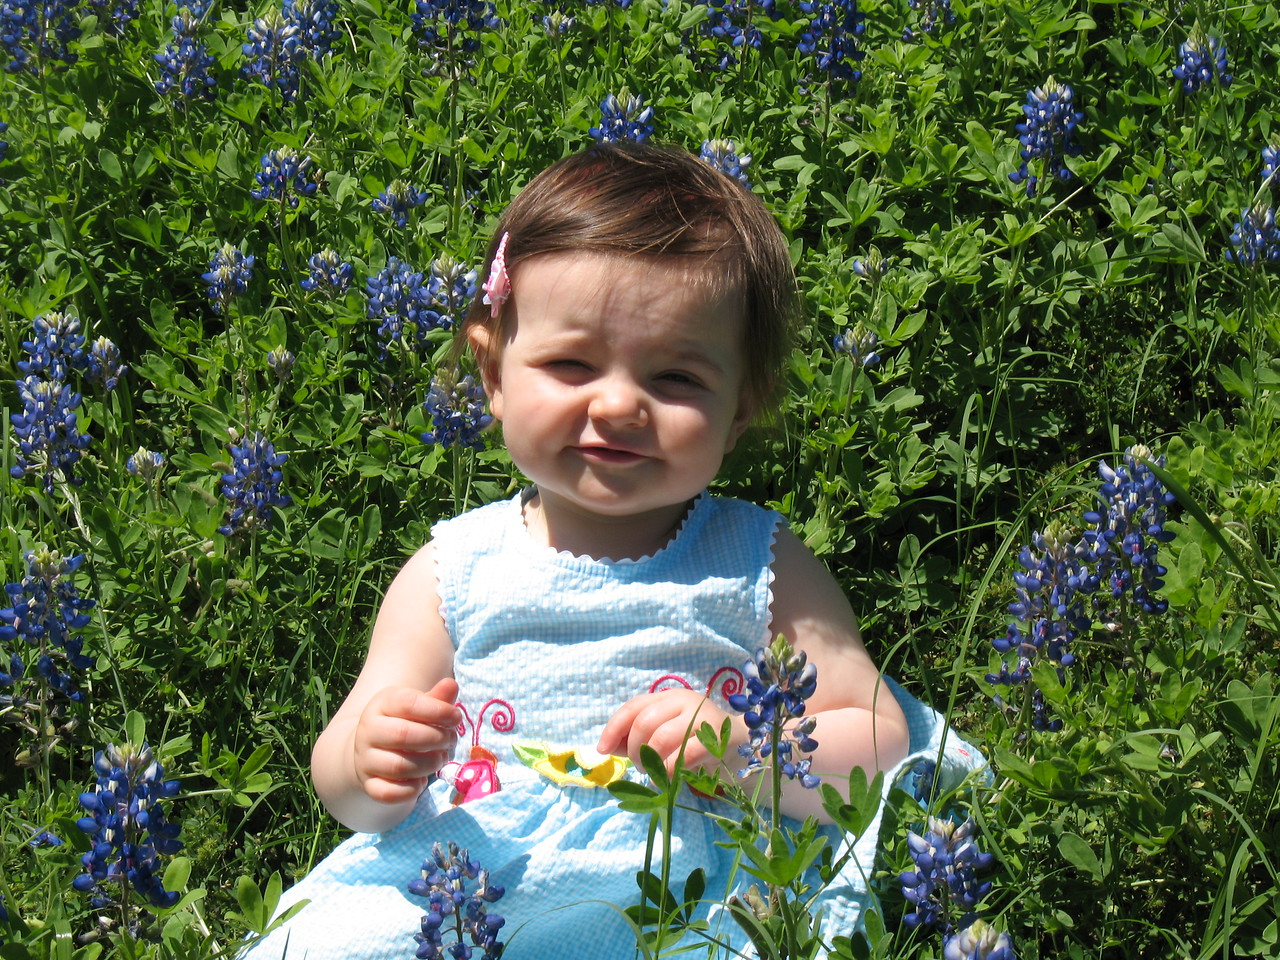 The prettiest bluebonnet ever!